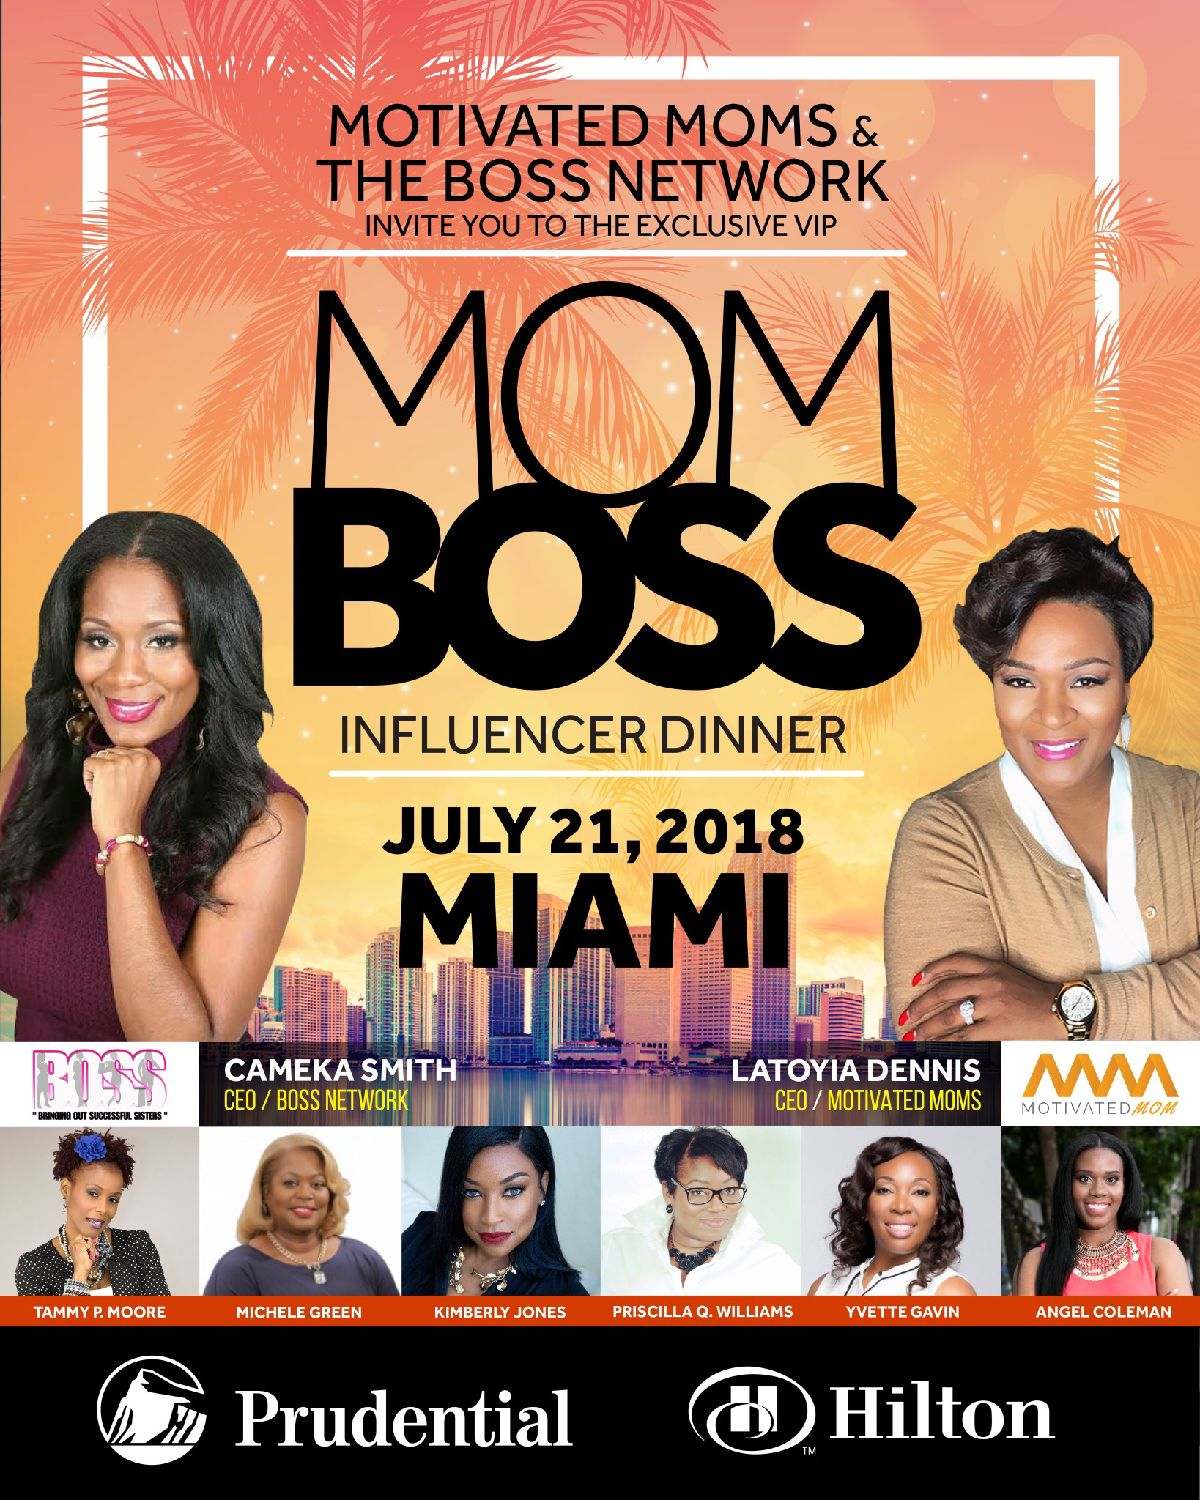 MOM Boss Influencer Dinner